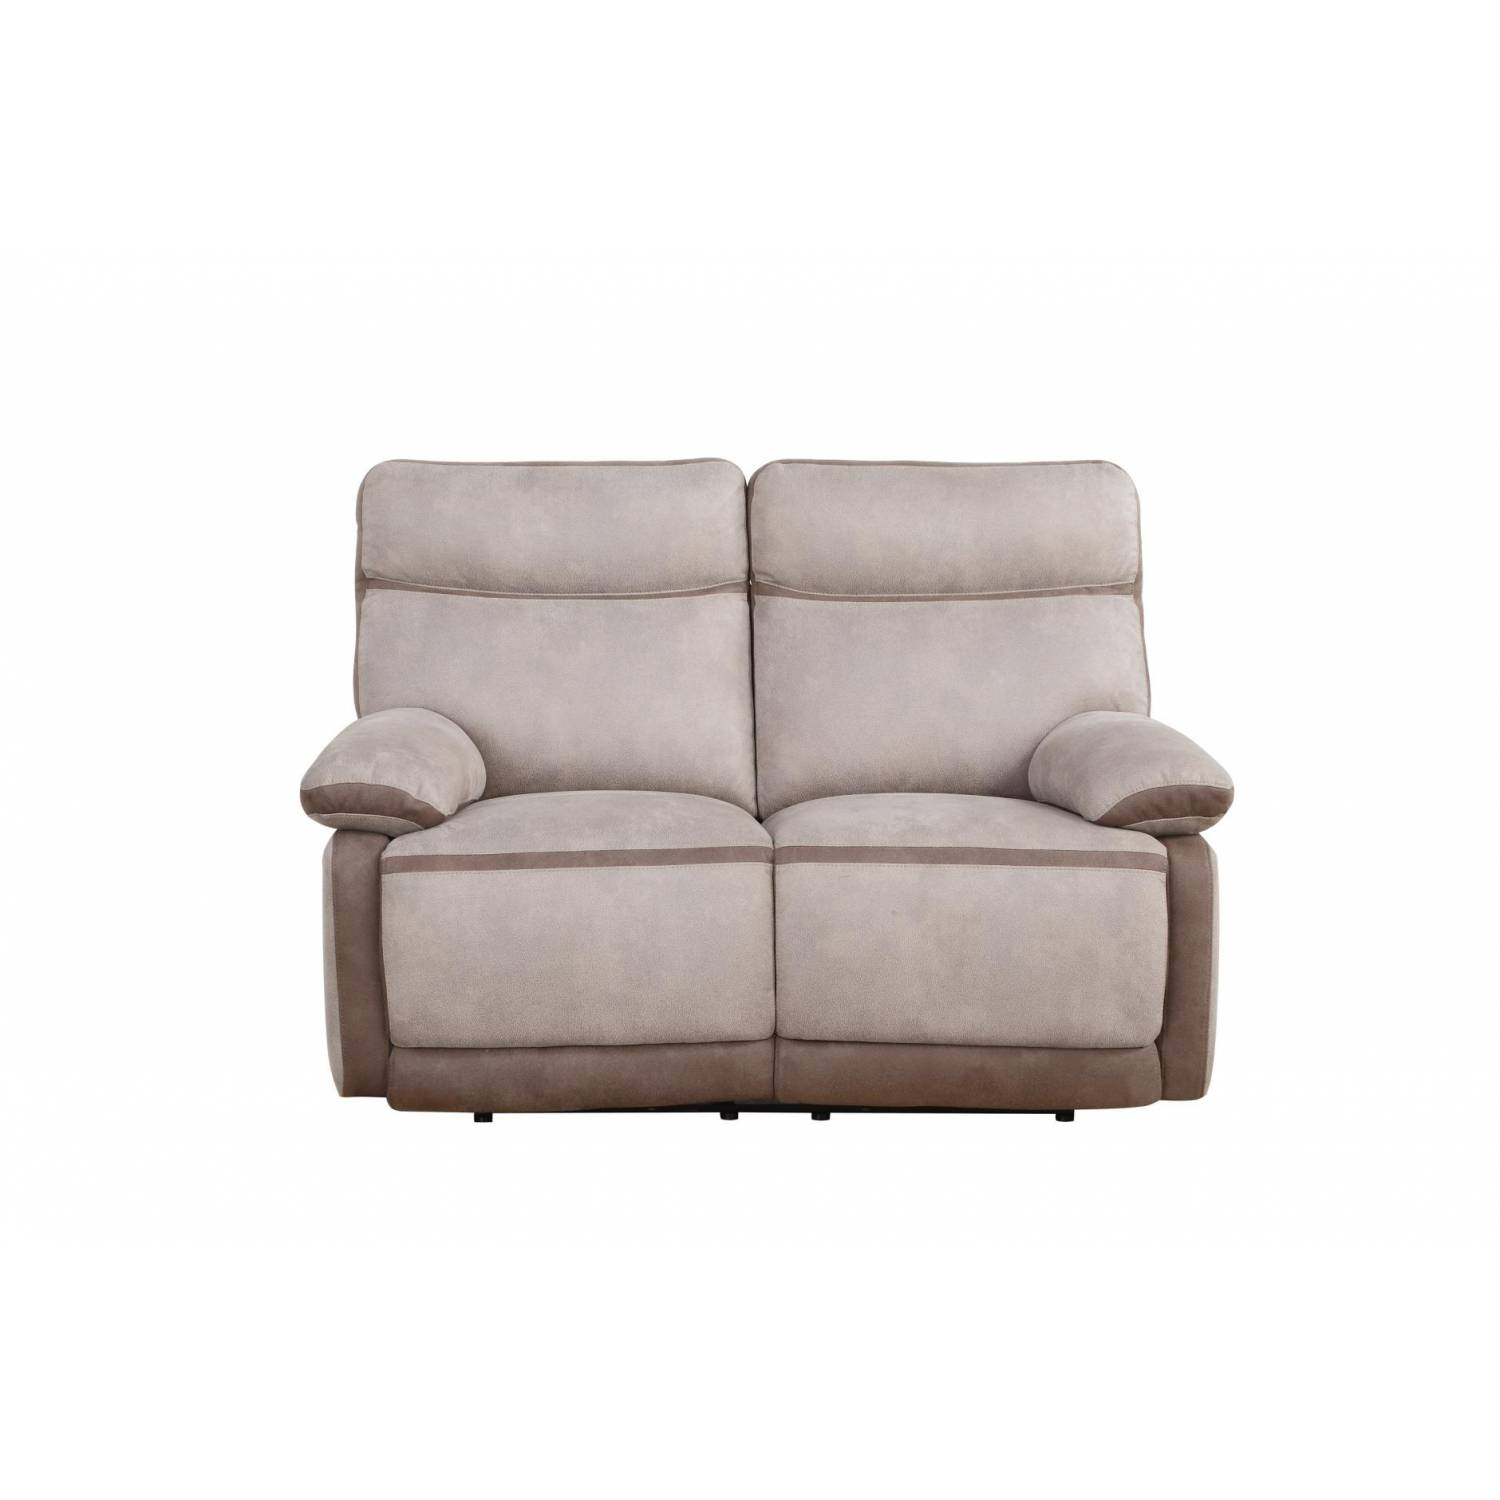 9920rf Pw Barilotto Power Double Reclining Love Seat With Power Headrests